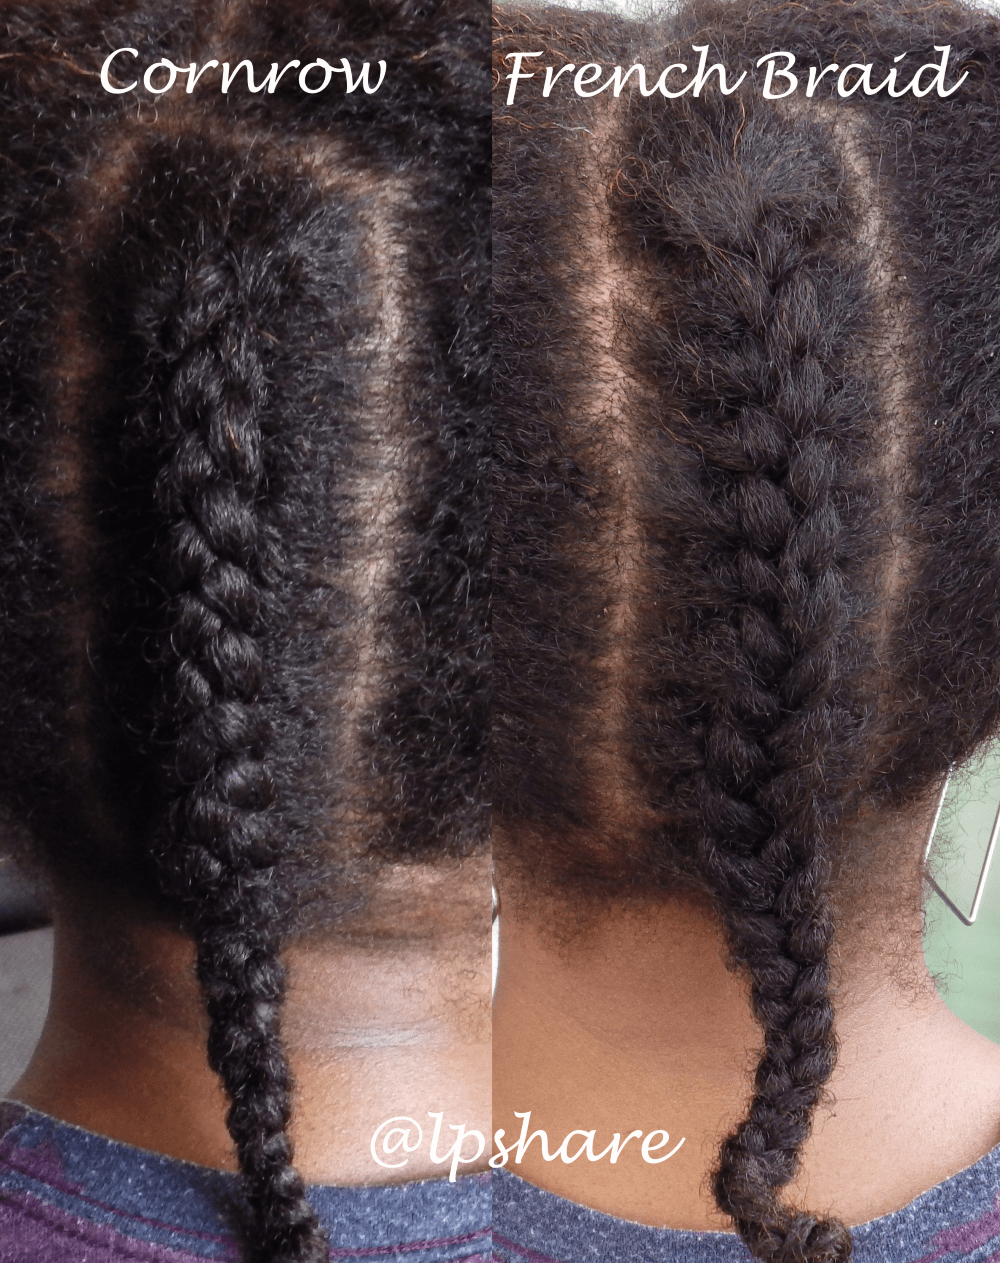 cornrow and frenchbraid comparison